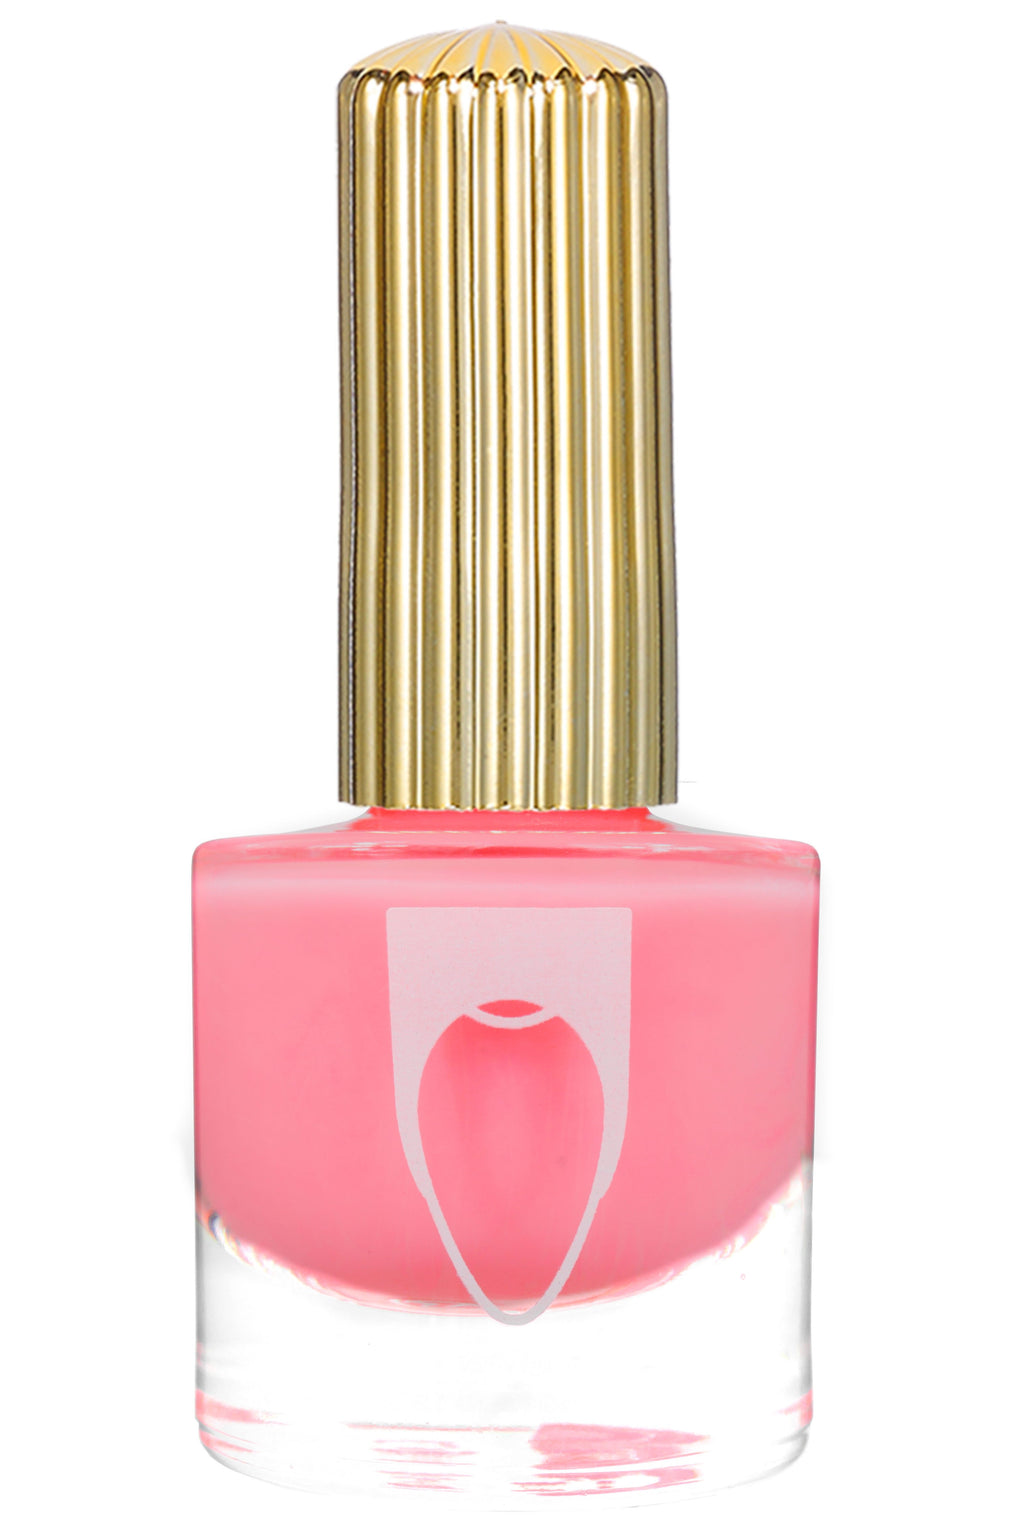 Pastel Pink color Floss Gloss nail polish in Playa del Pink